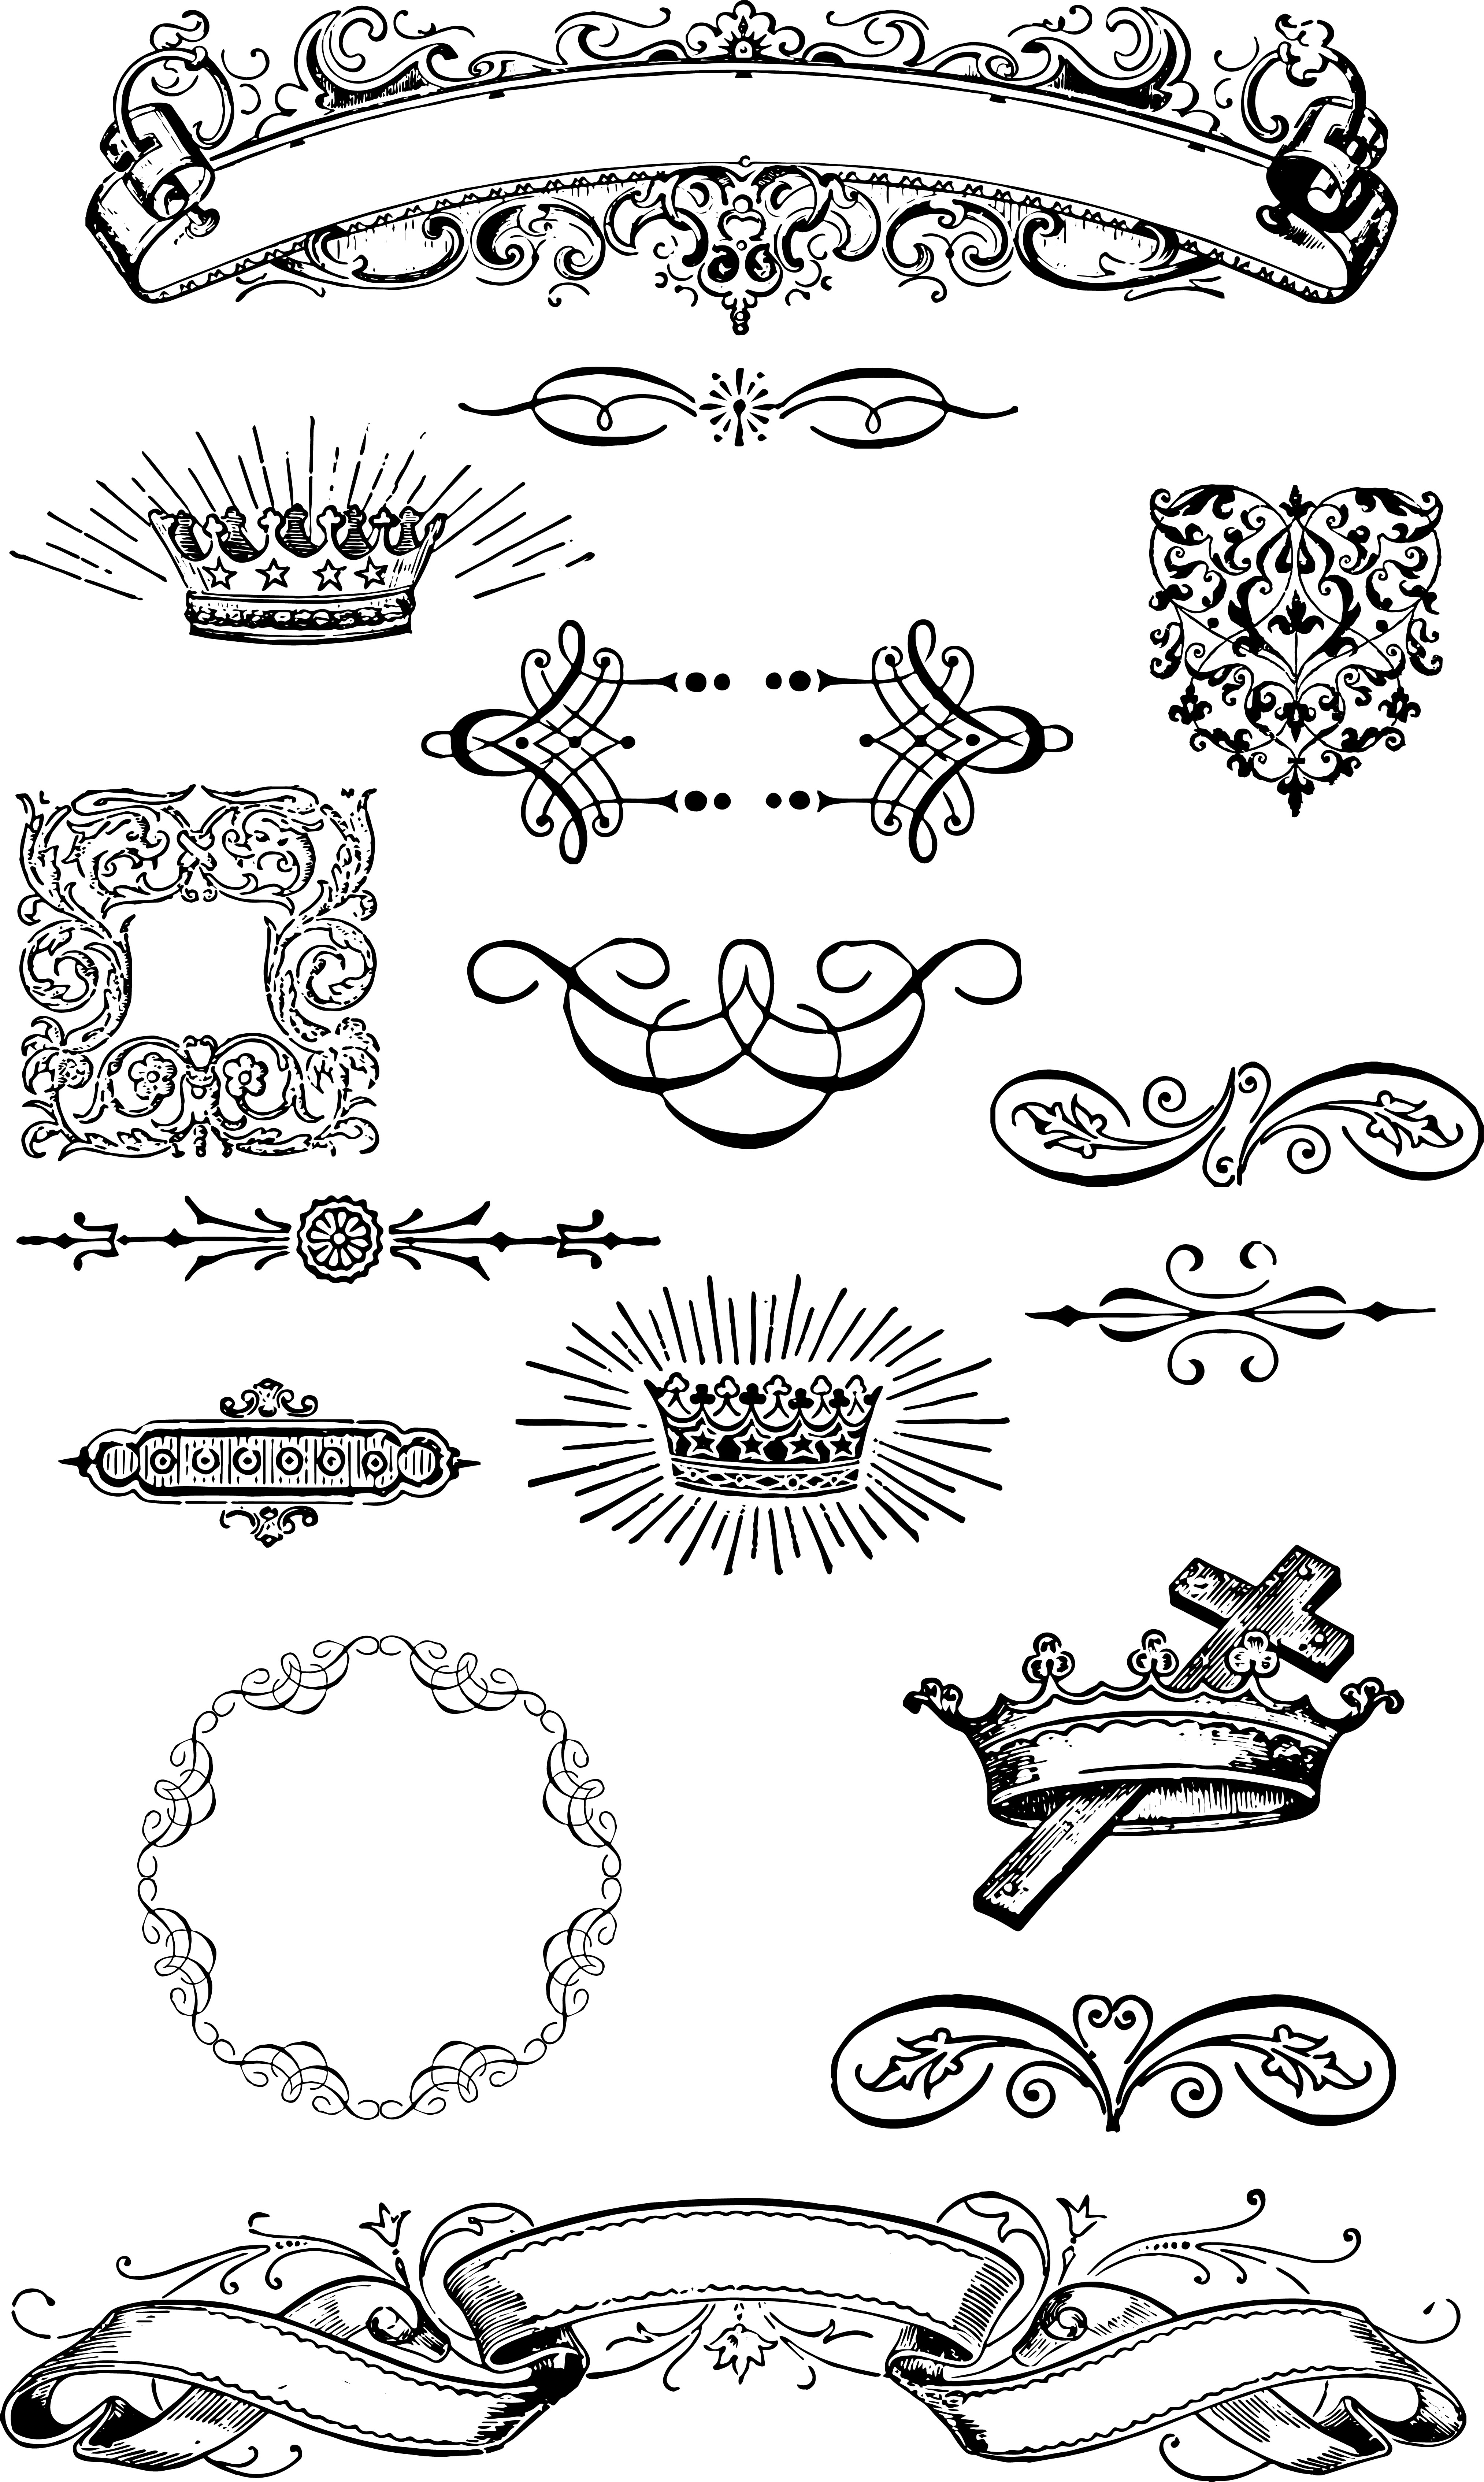 Calligraphy clipart western Search art Google cameo Google